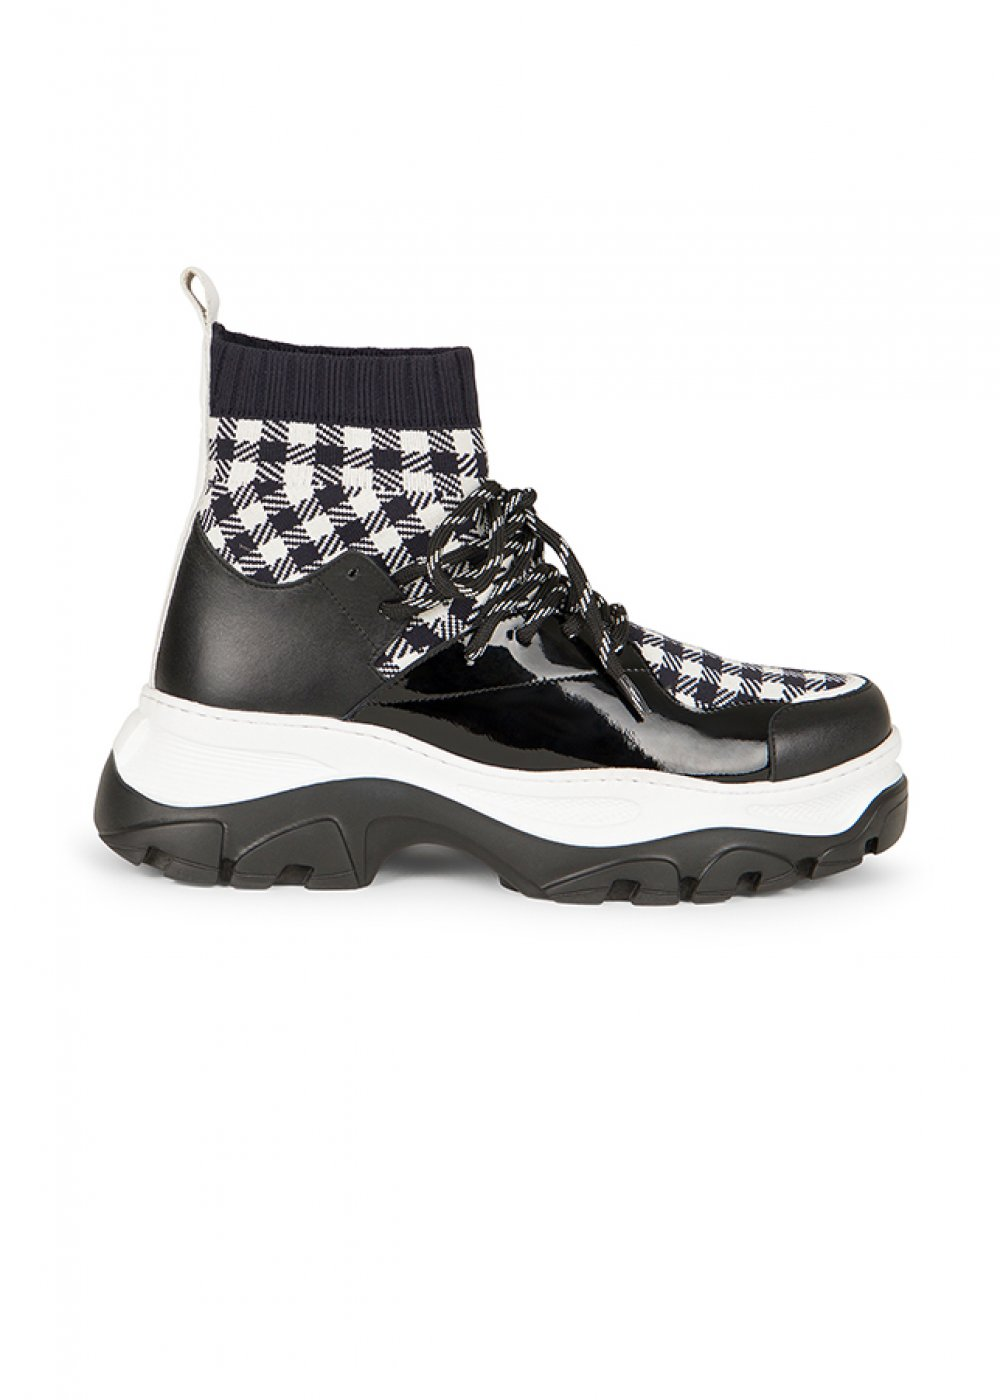 Checked Pattern Black Sneakers